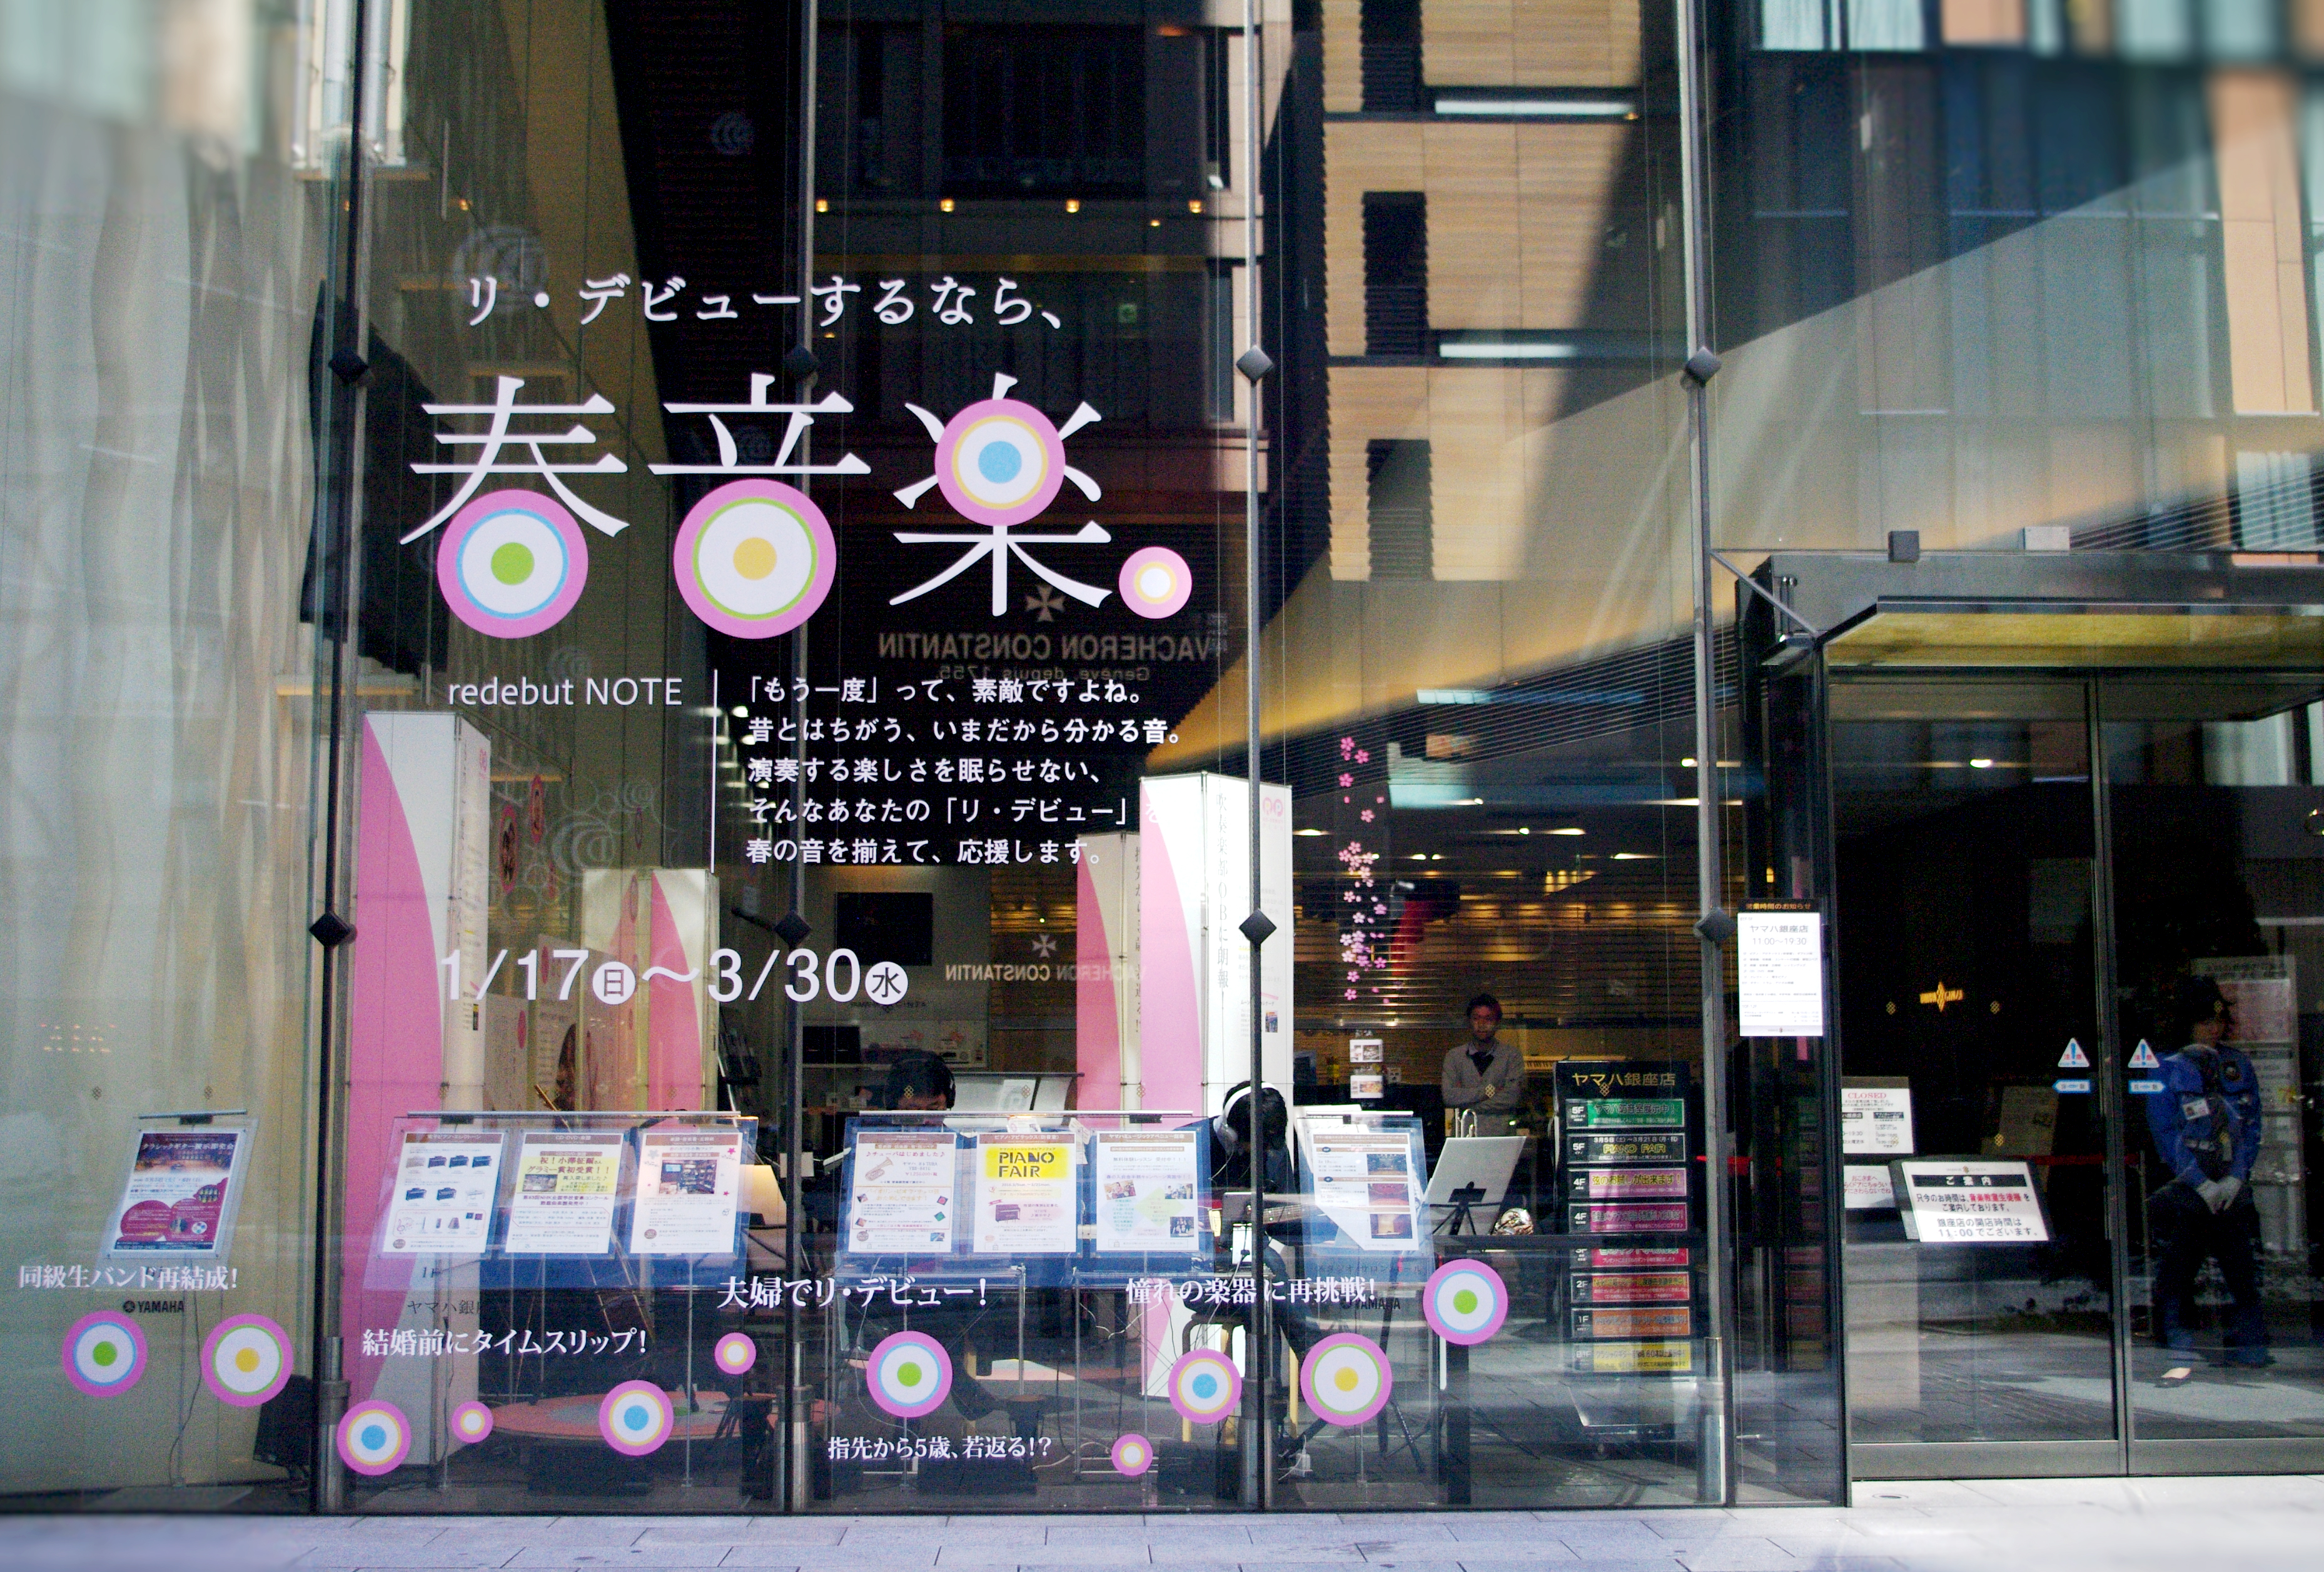 ginza-redebut-img00